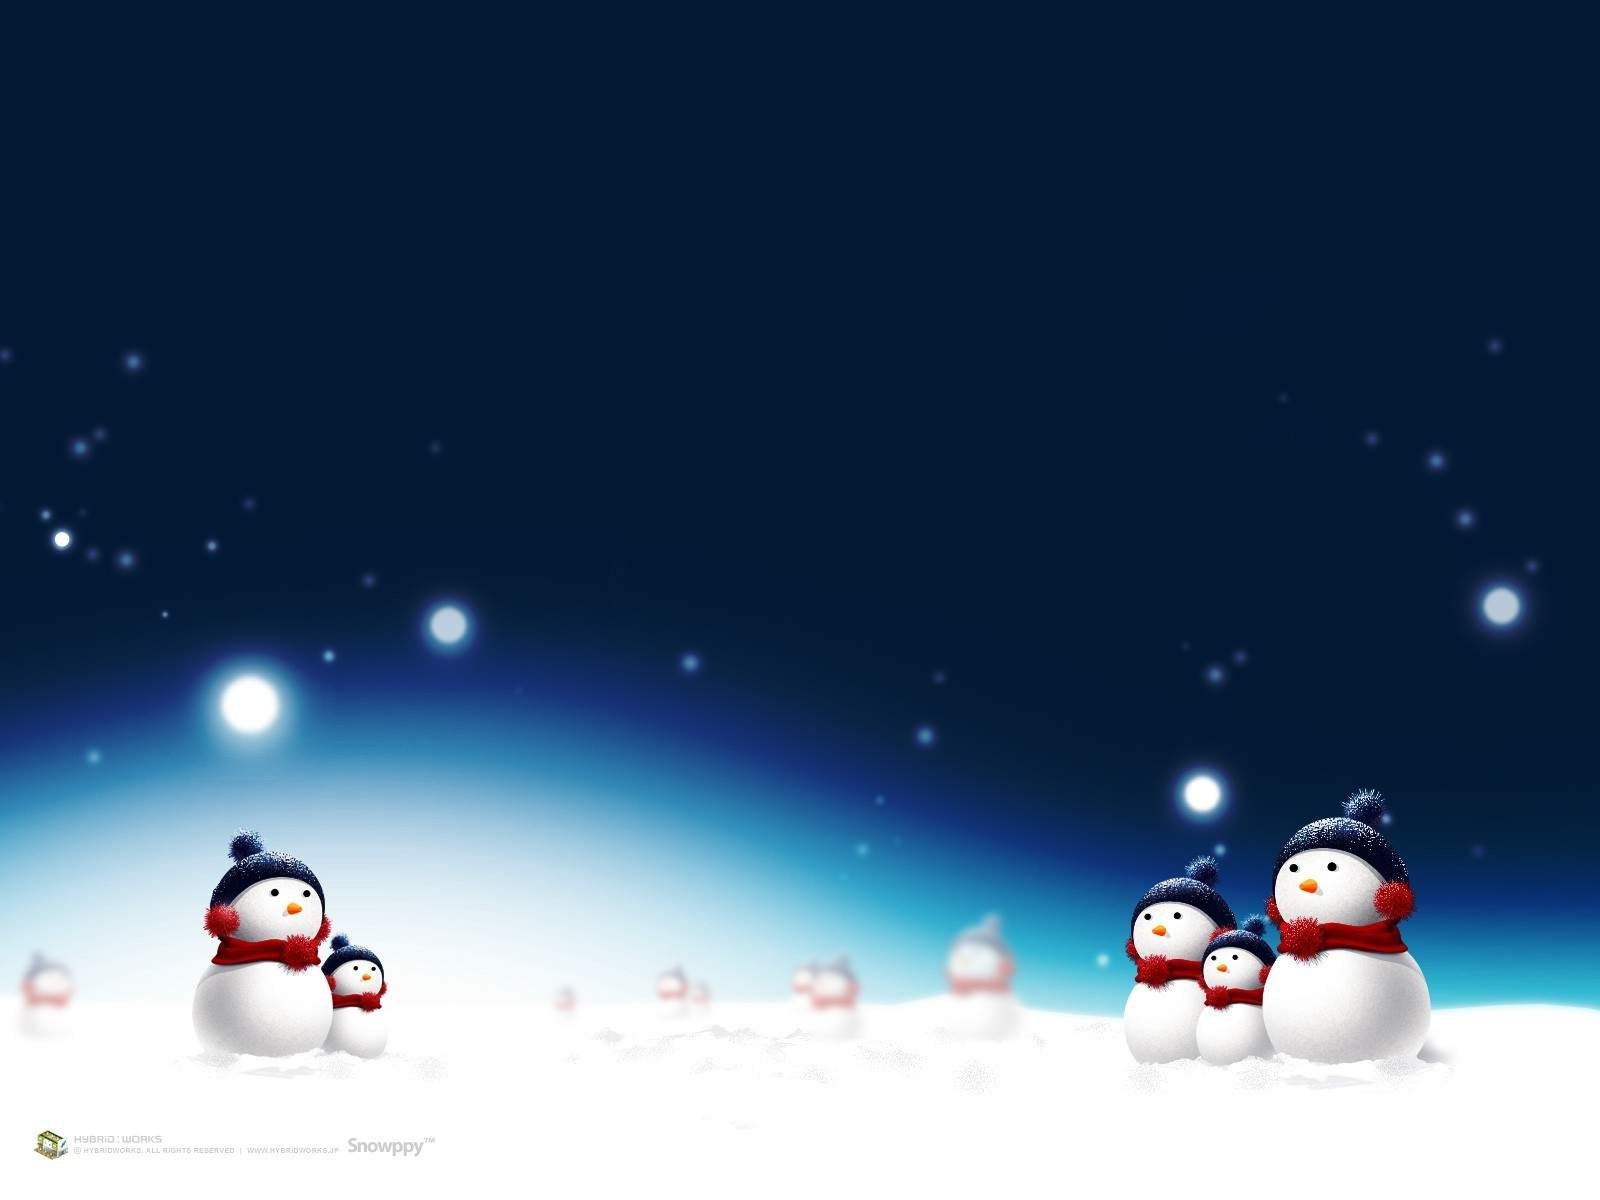 Animated Christmas Desktop Backgrounds 25161 Wallpaper